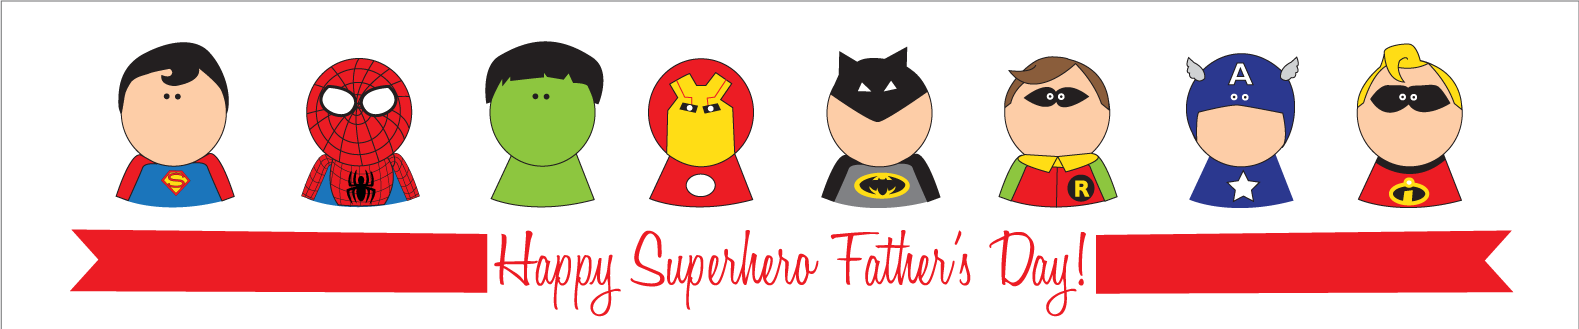 Father's Day Superhero Set {Free Download} - Kiki & Company